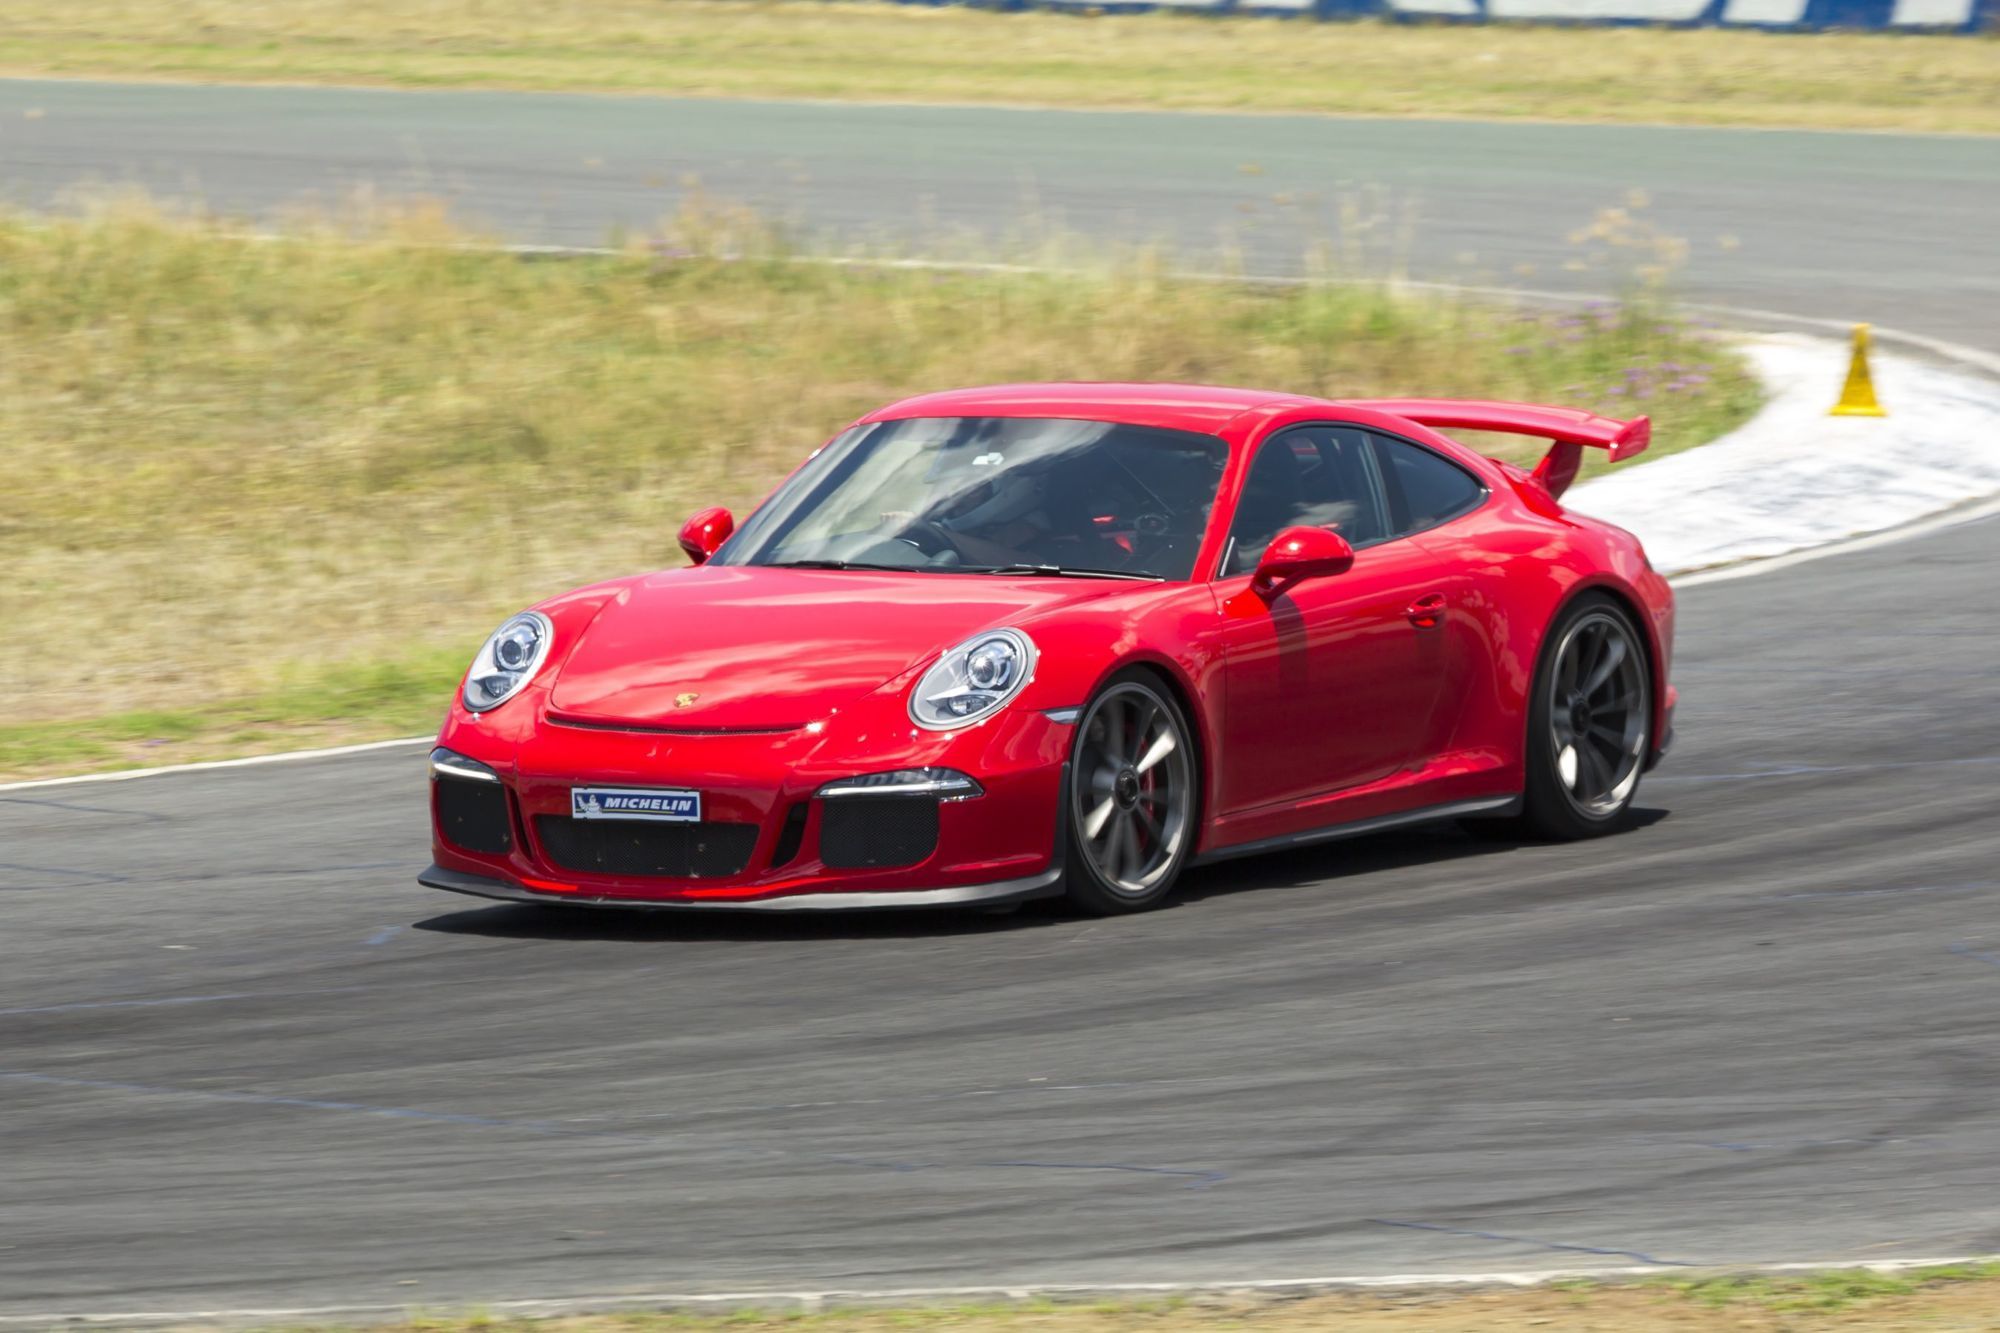 2015 Porsche 911 Gt3 Rides On Latest Michelin Pilot Sport